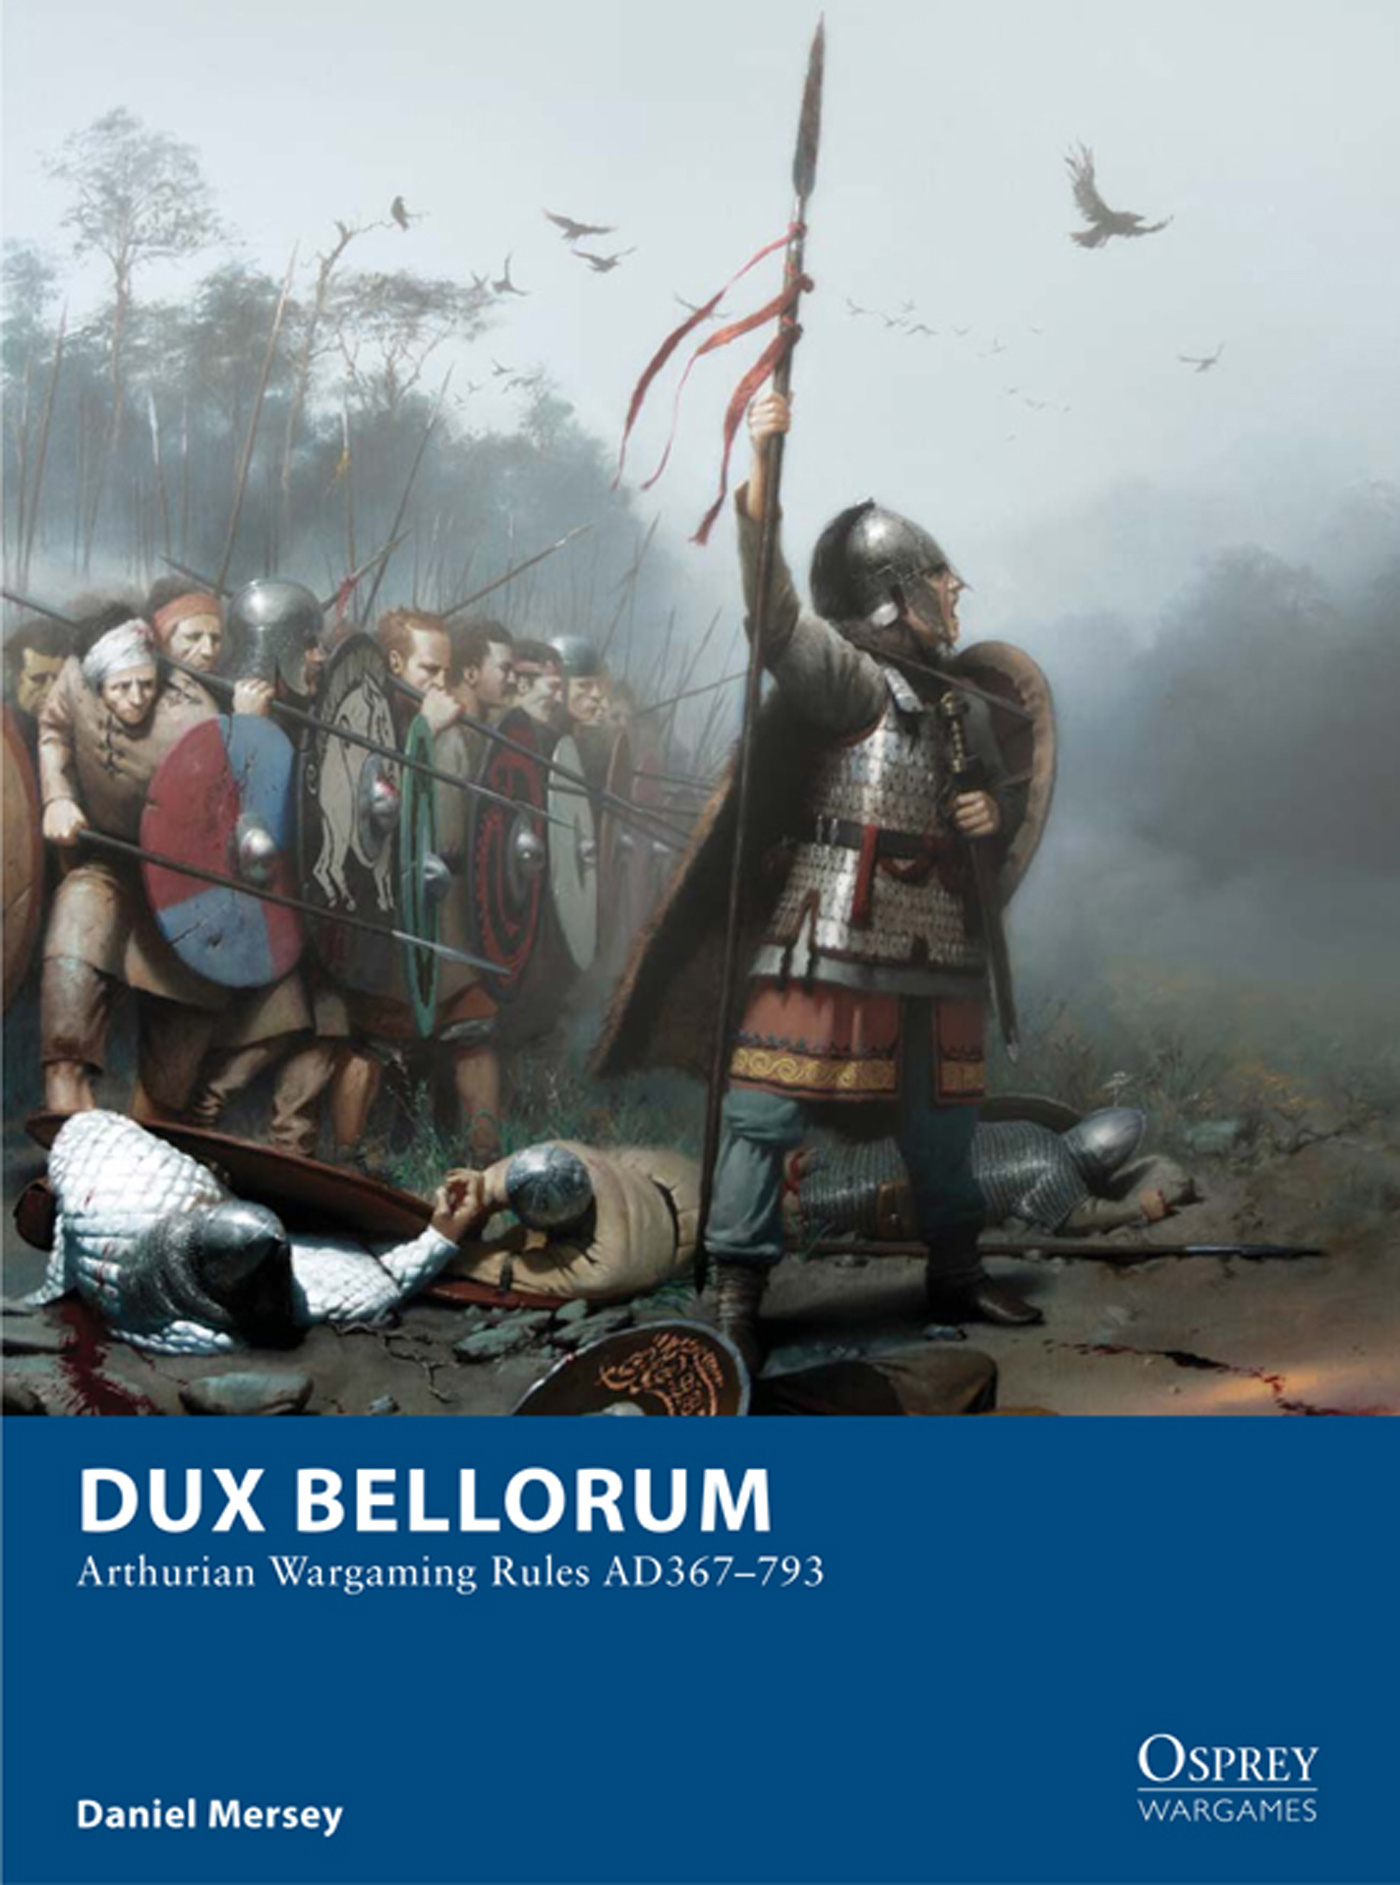 Dux Bellorum - Aarthurian Wargame Rules, AD 367-793